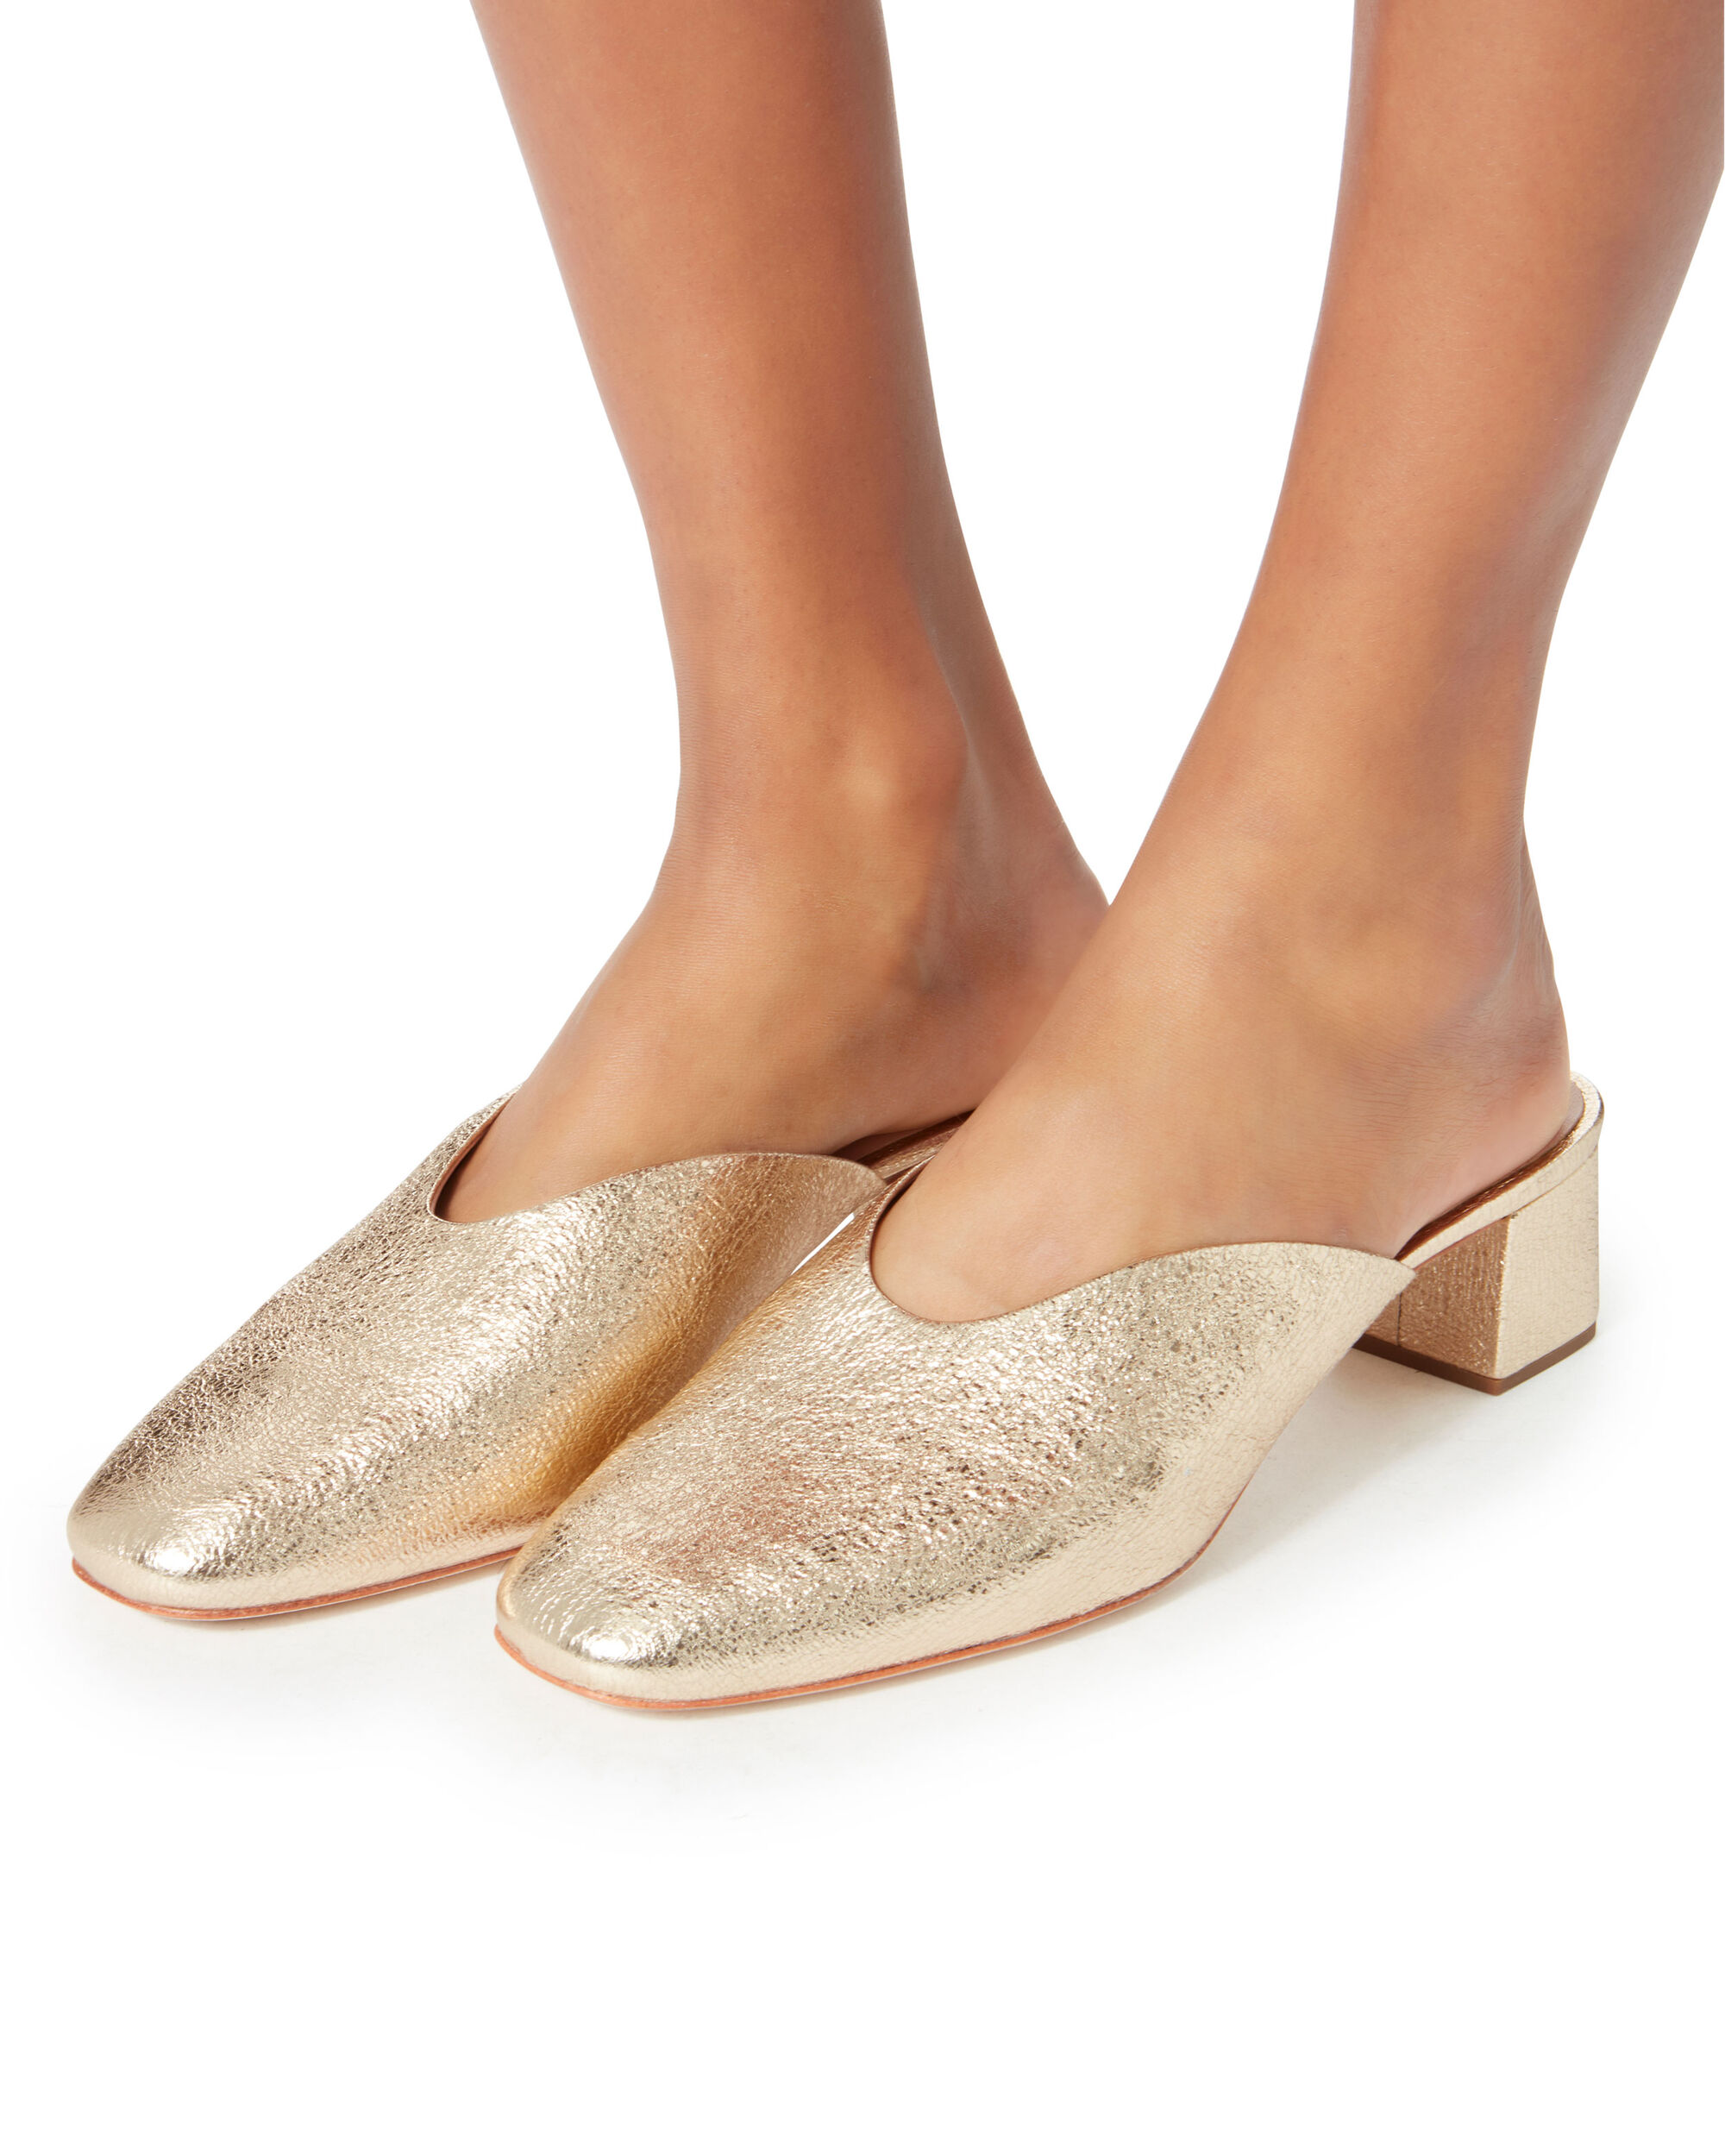 Lulu Crinkle Metallic Gold Leather Mules, GOLD, hi-res